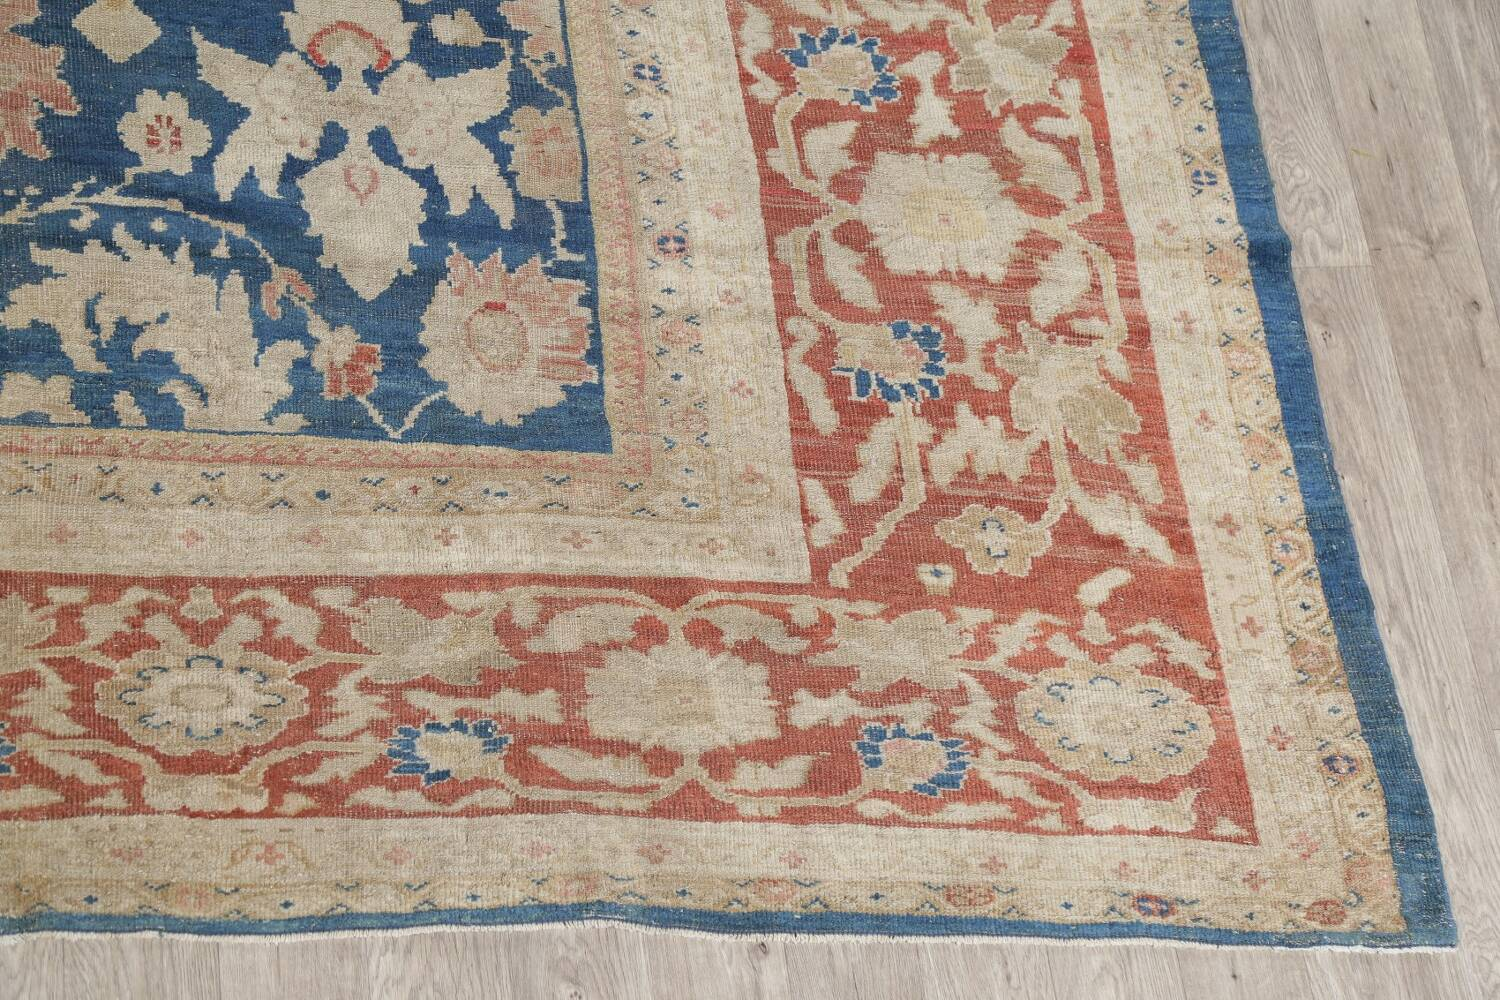 Antique Floral Sultanabad Persian Area Rug 10x16 Large image 5